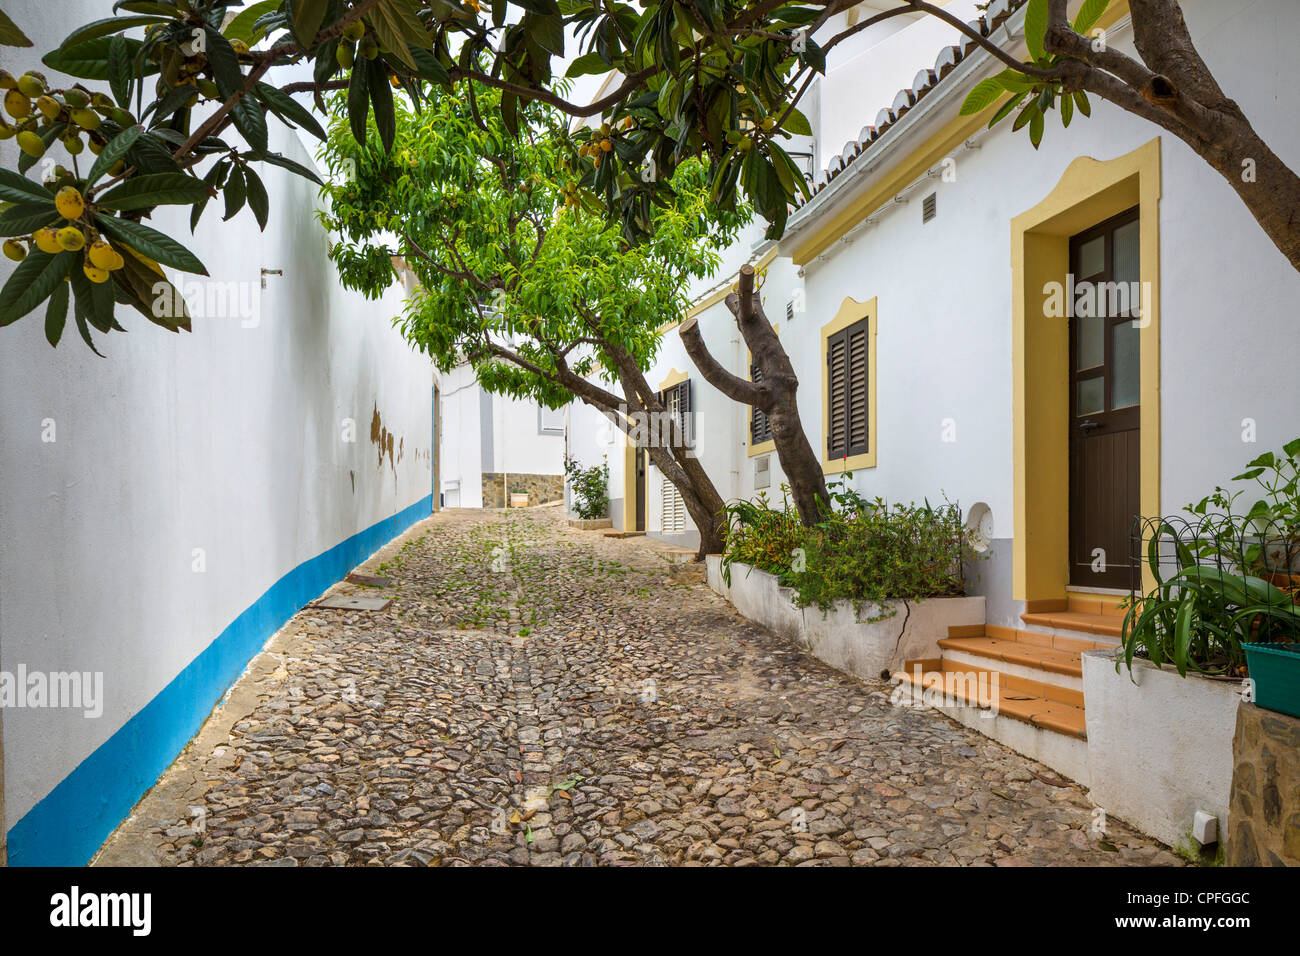 Row of typical houses in the inland town of Loule, Algarve, Portugal - Stock Image